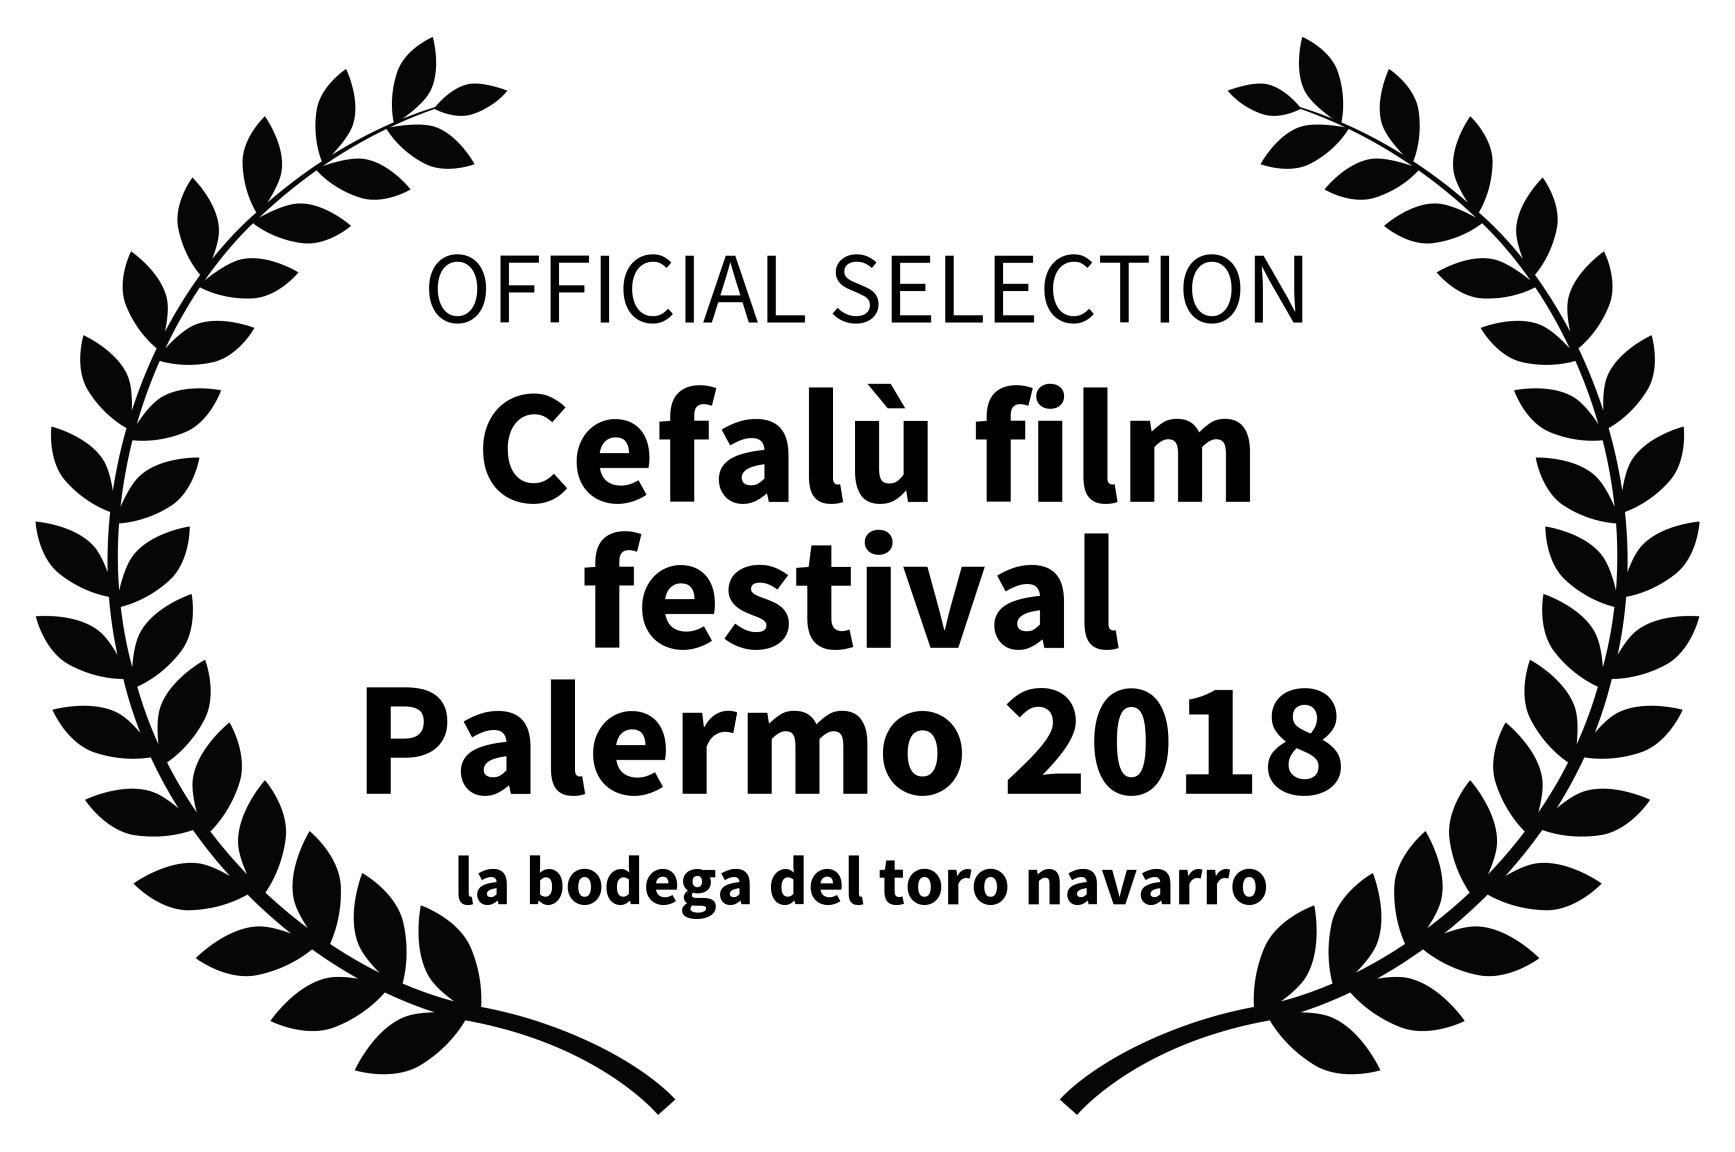 OFFICIAL SELECTION - Cefal film festival  Palermo 2018 - la bodega del toro navarro  copia